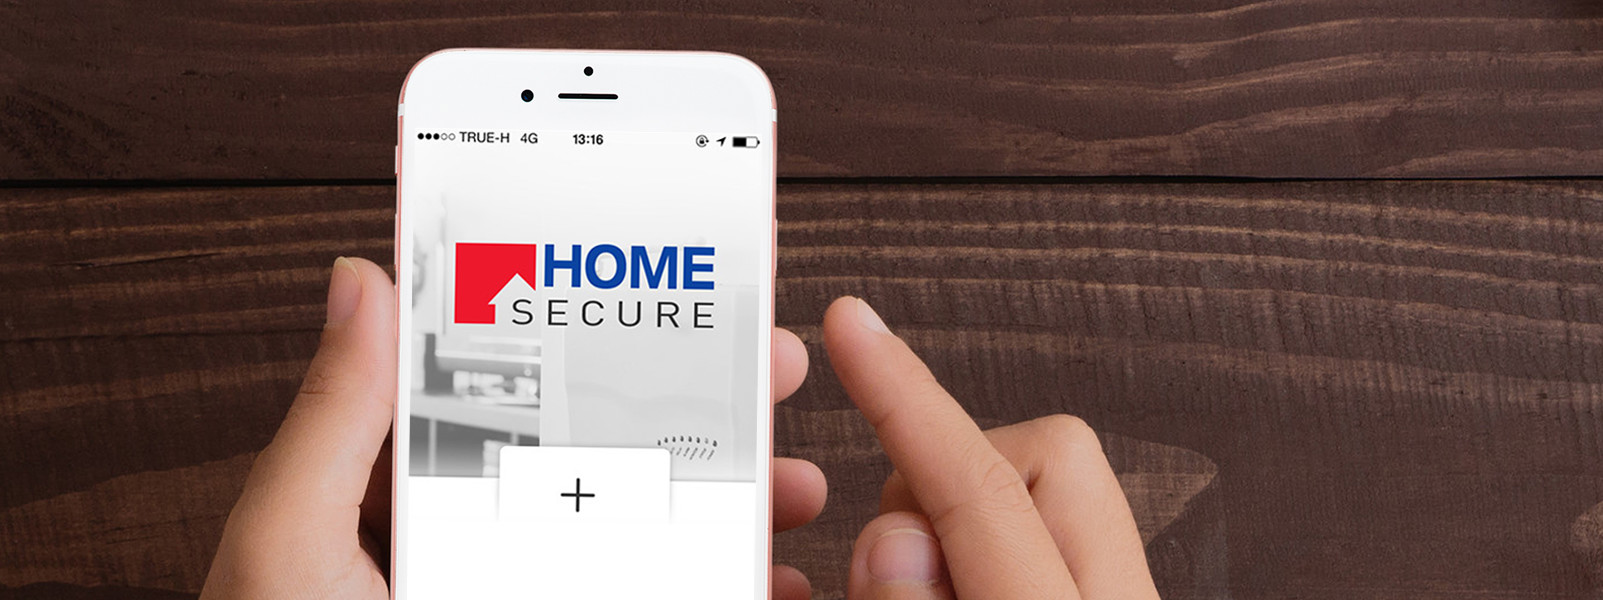 HomeSecure Case Image